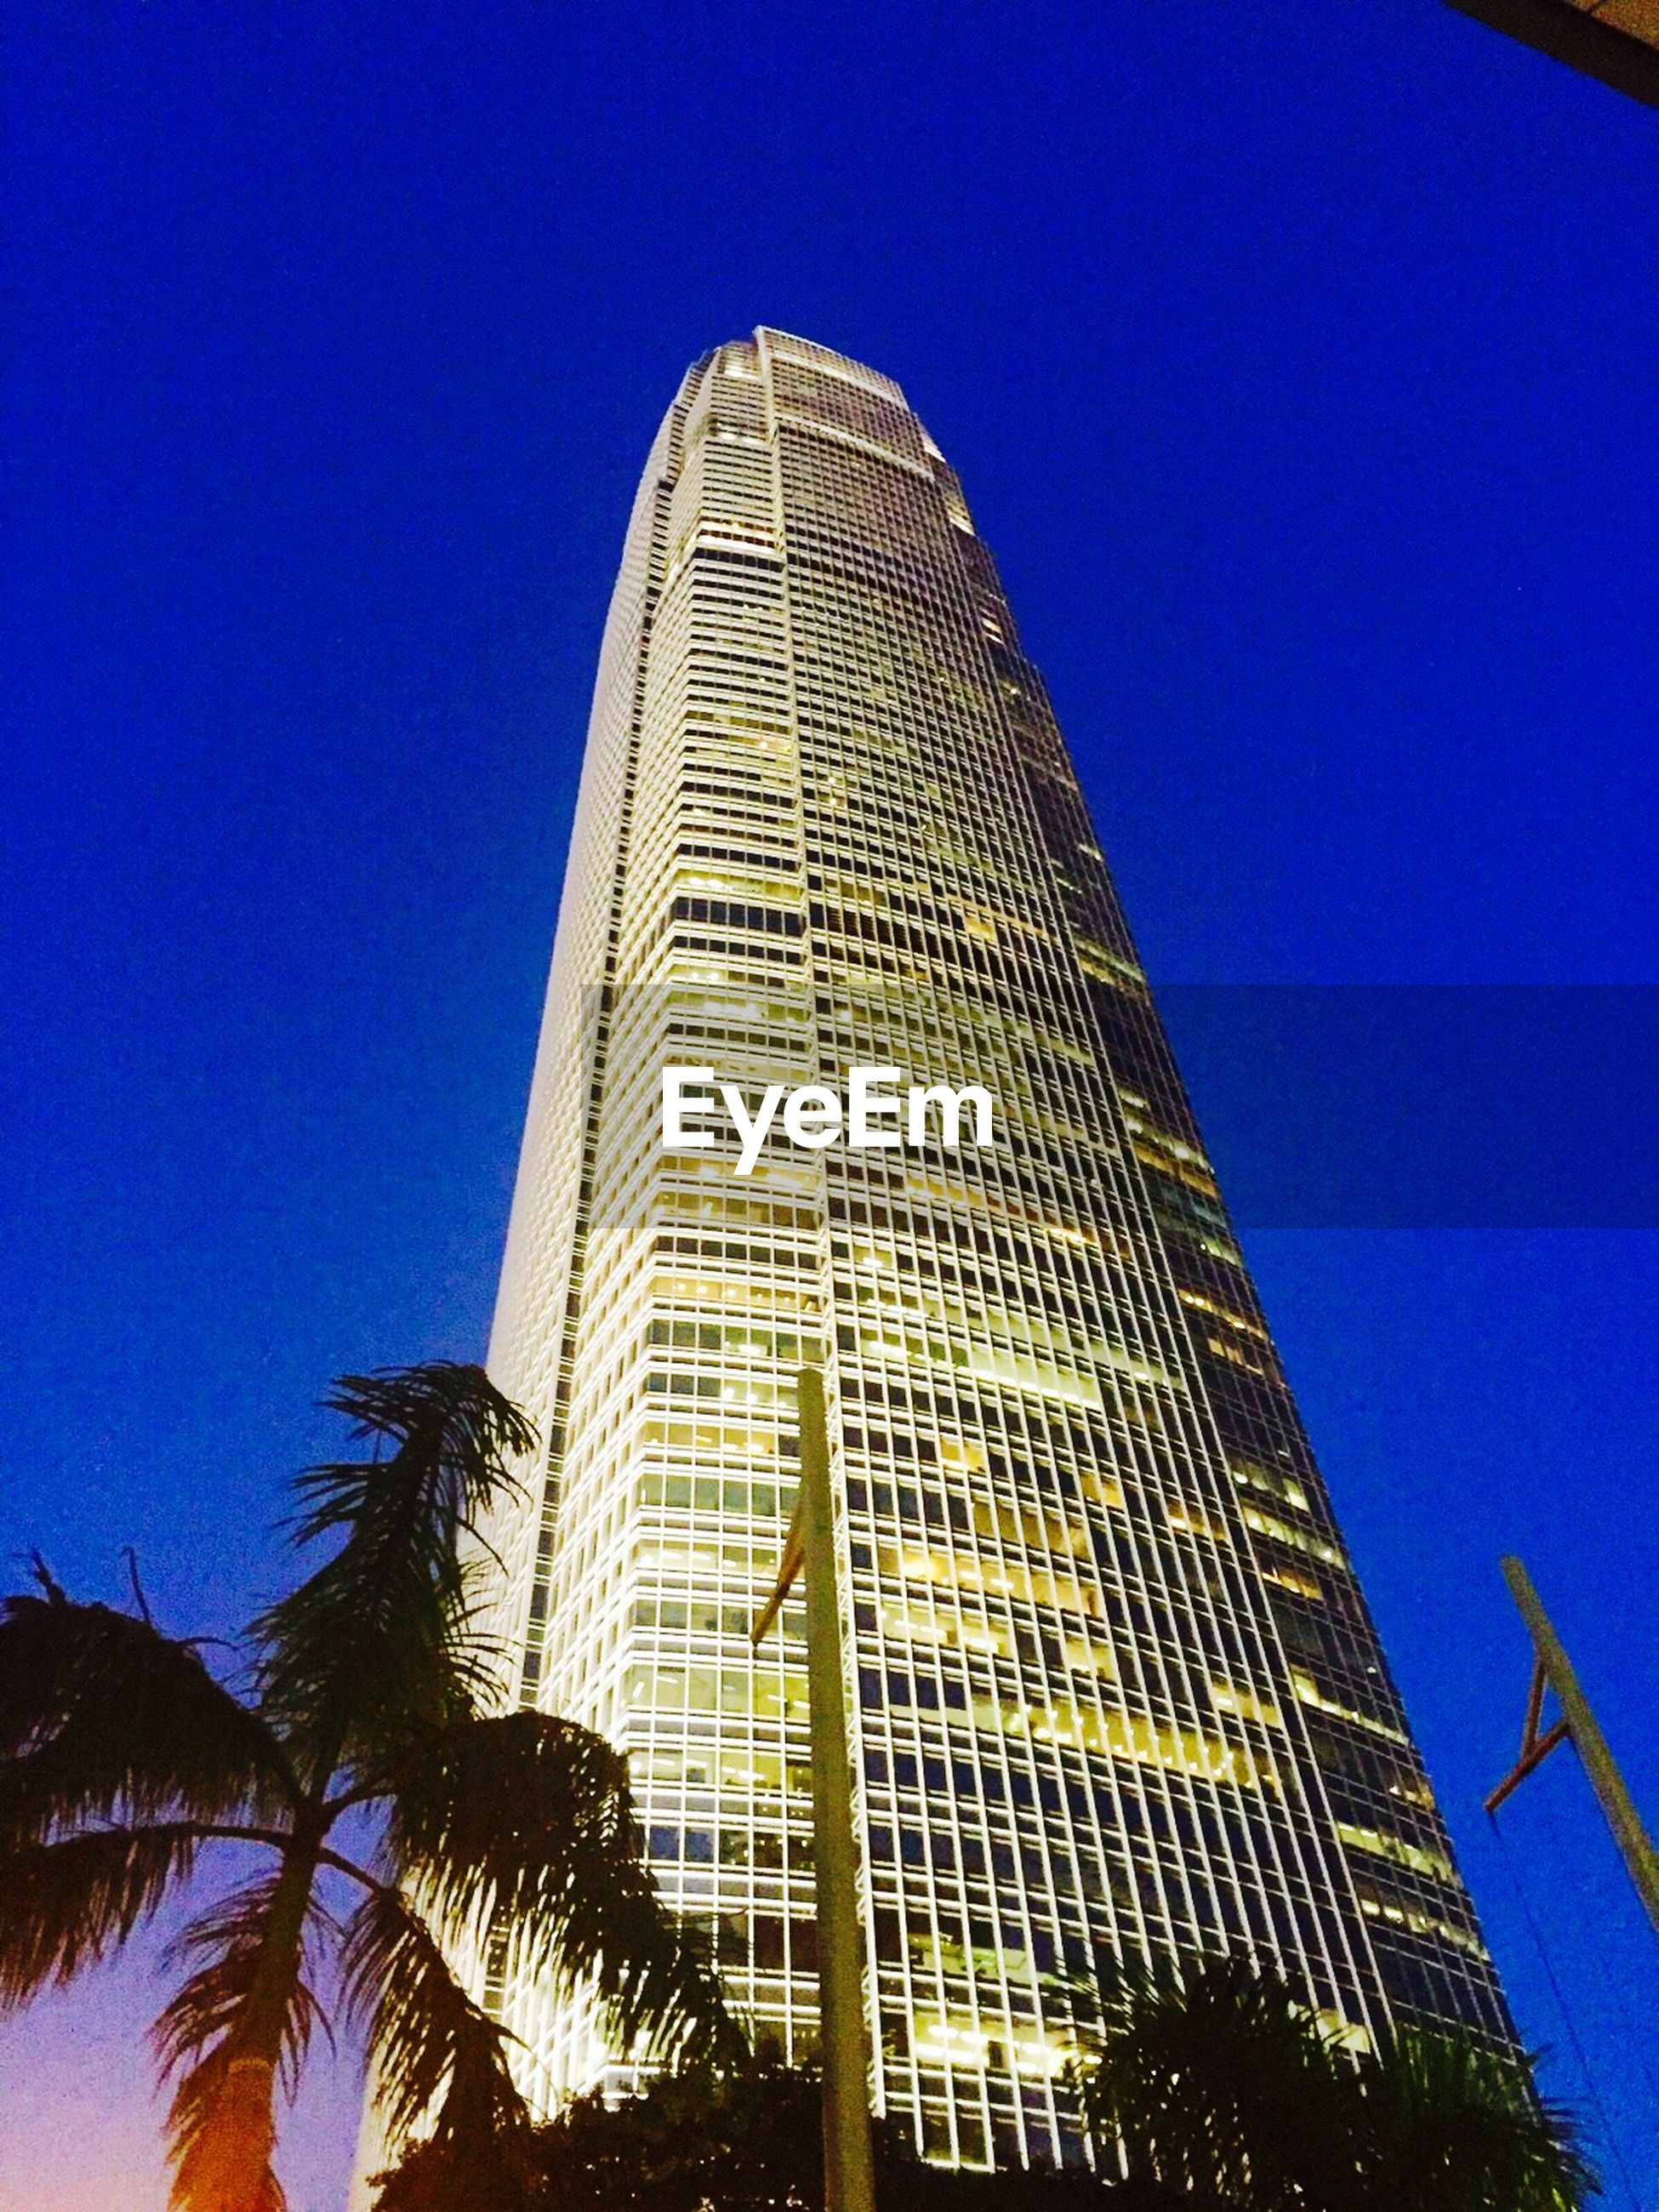 blue, low angle view, architecture, built structure, clear sky, building exterior, tall - high, tower, tree, modern, city, tall, building, skyscraper, office building, outdoors, no people, reflection, growth, sunlight